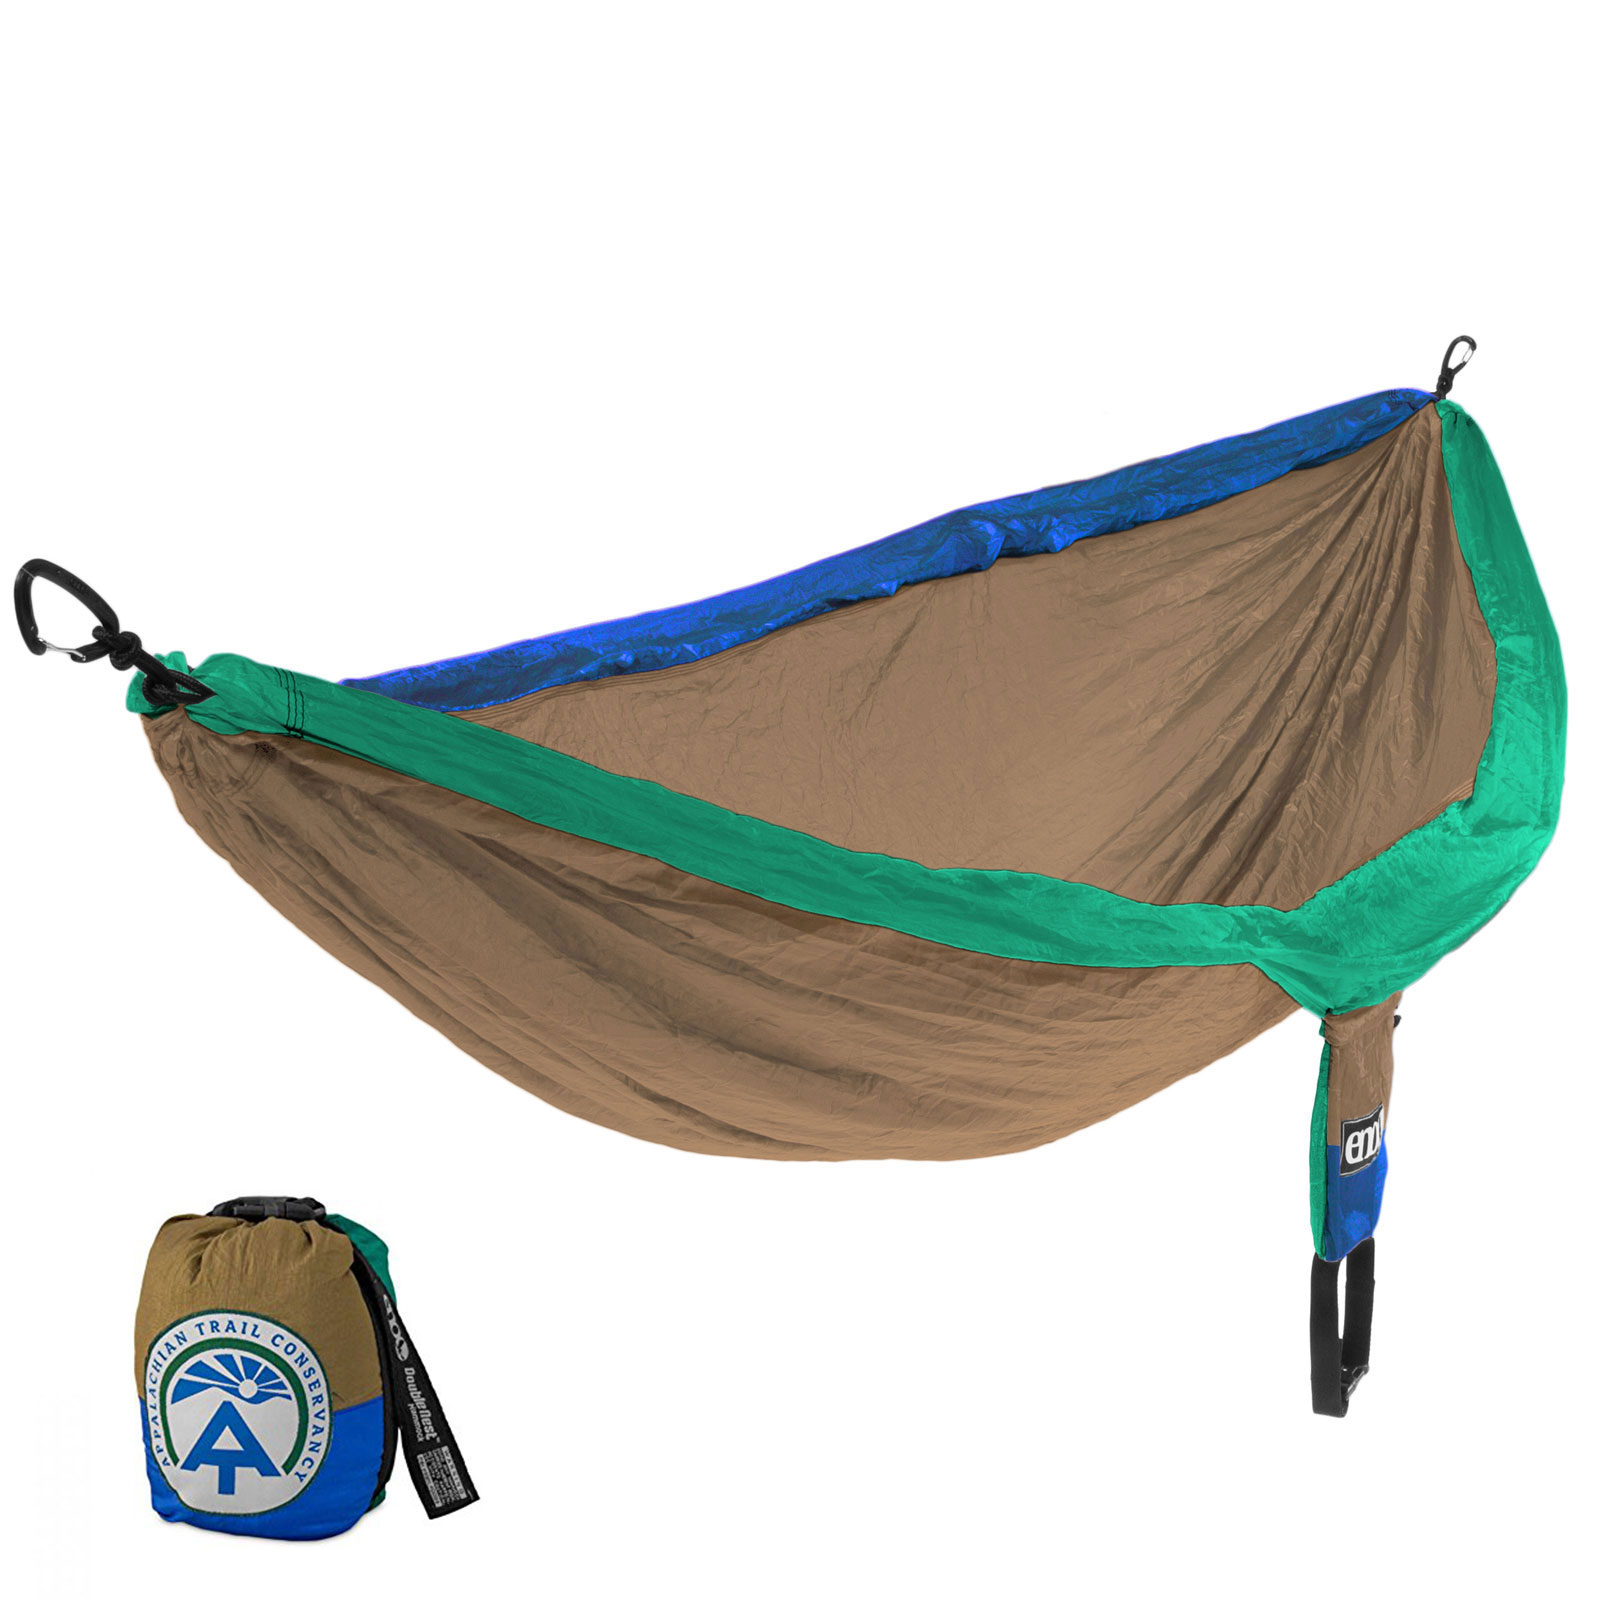 ENO DoubleNest Hammock Outdoor Camping Backpacking Nylon Portable